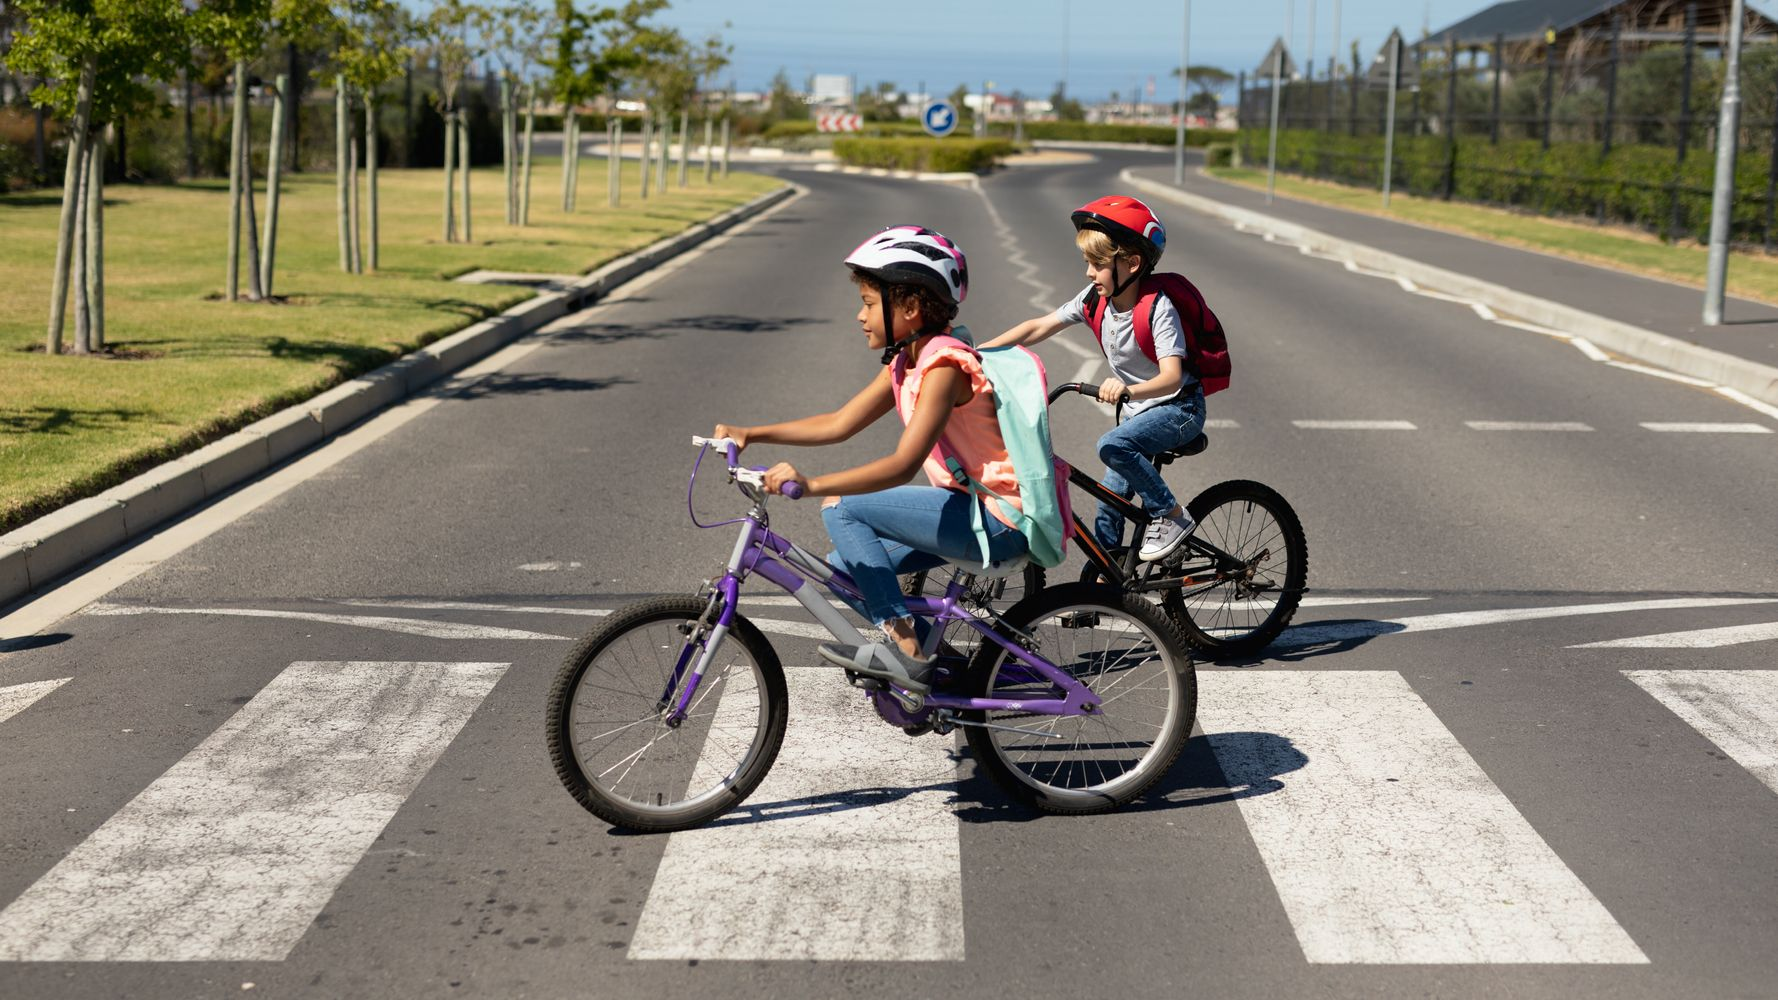 More People Are Biking These Days — So Why Are Kids Riding Less?